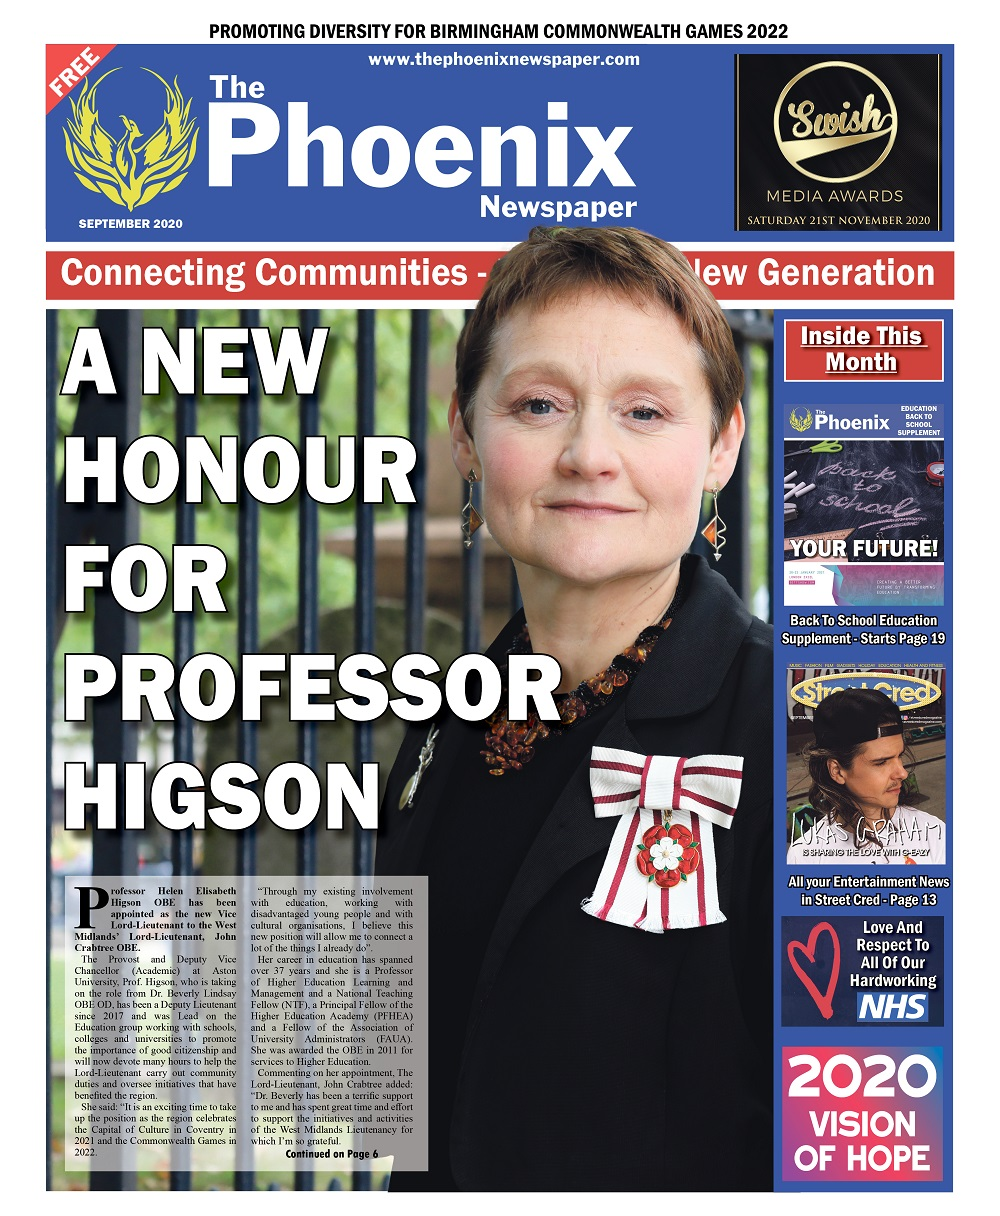 The Phoenix Newspaper – September Edition 2020